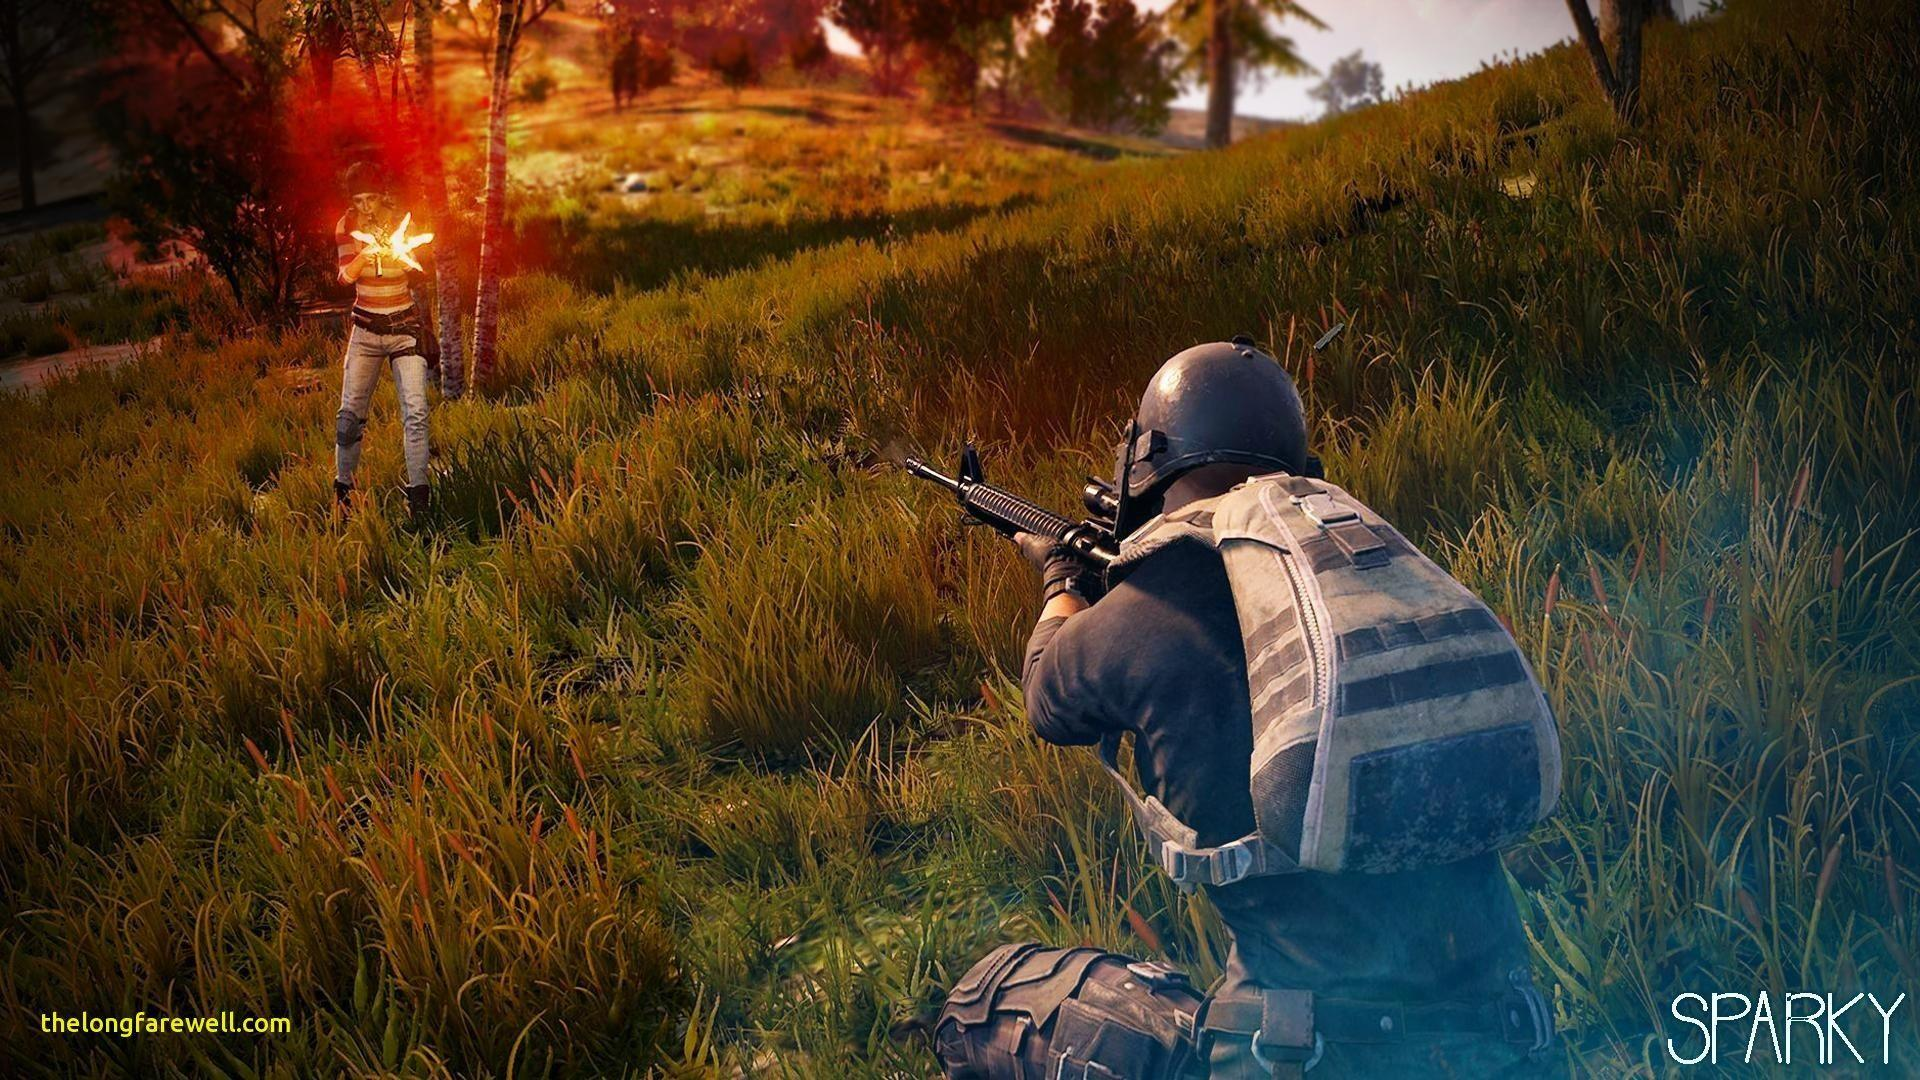 10 Latest Wallpaper Hd Games 2015 Full Hd 1080p For Pc: PUBG 4K Wallpapers